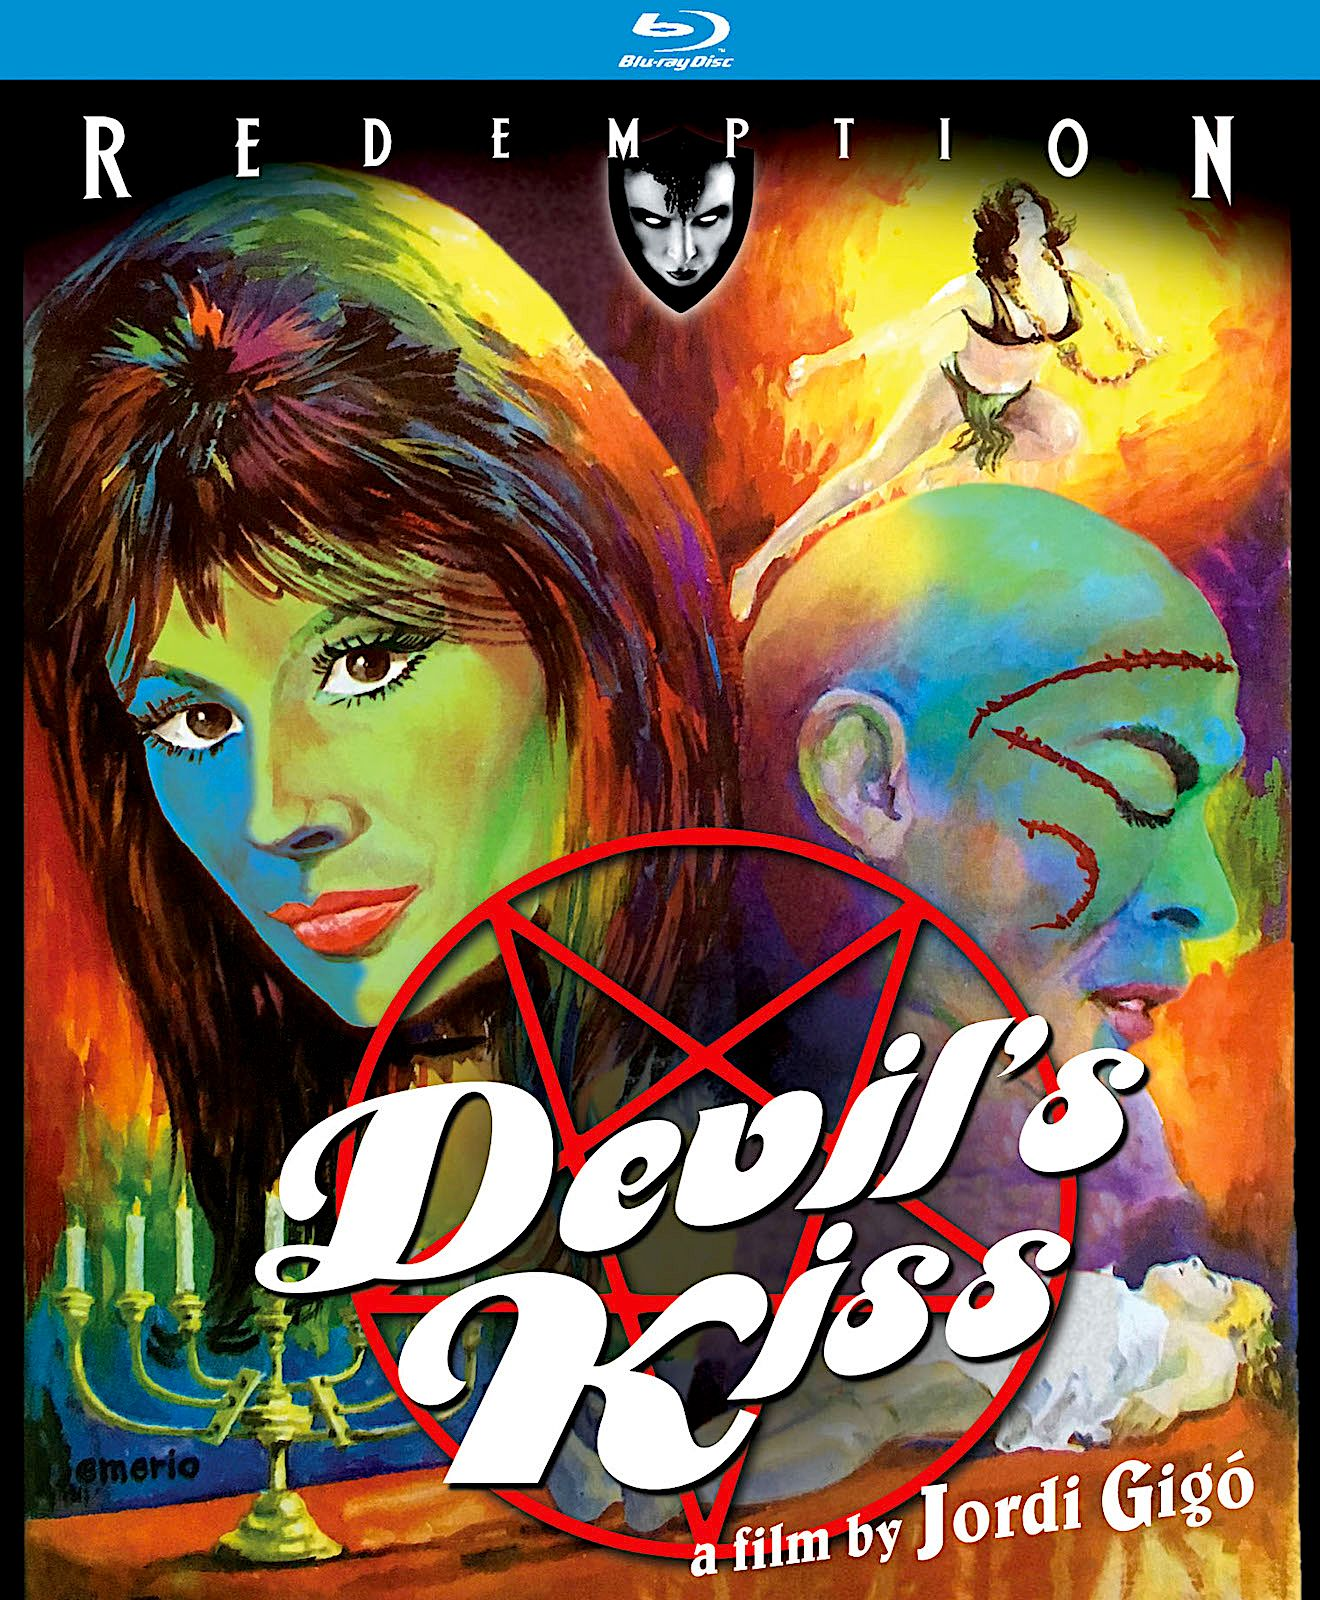 DEVIL'S KISS BLU-RAY SPINE #57 (KINO LORBER / REDEMPTION